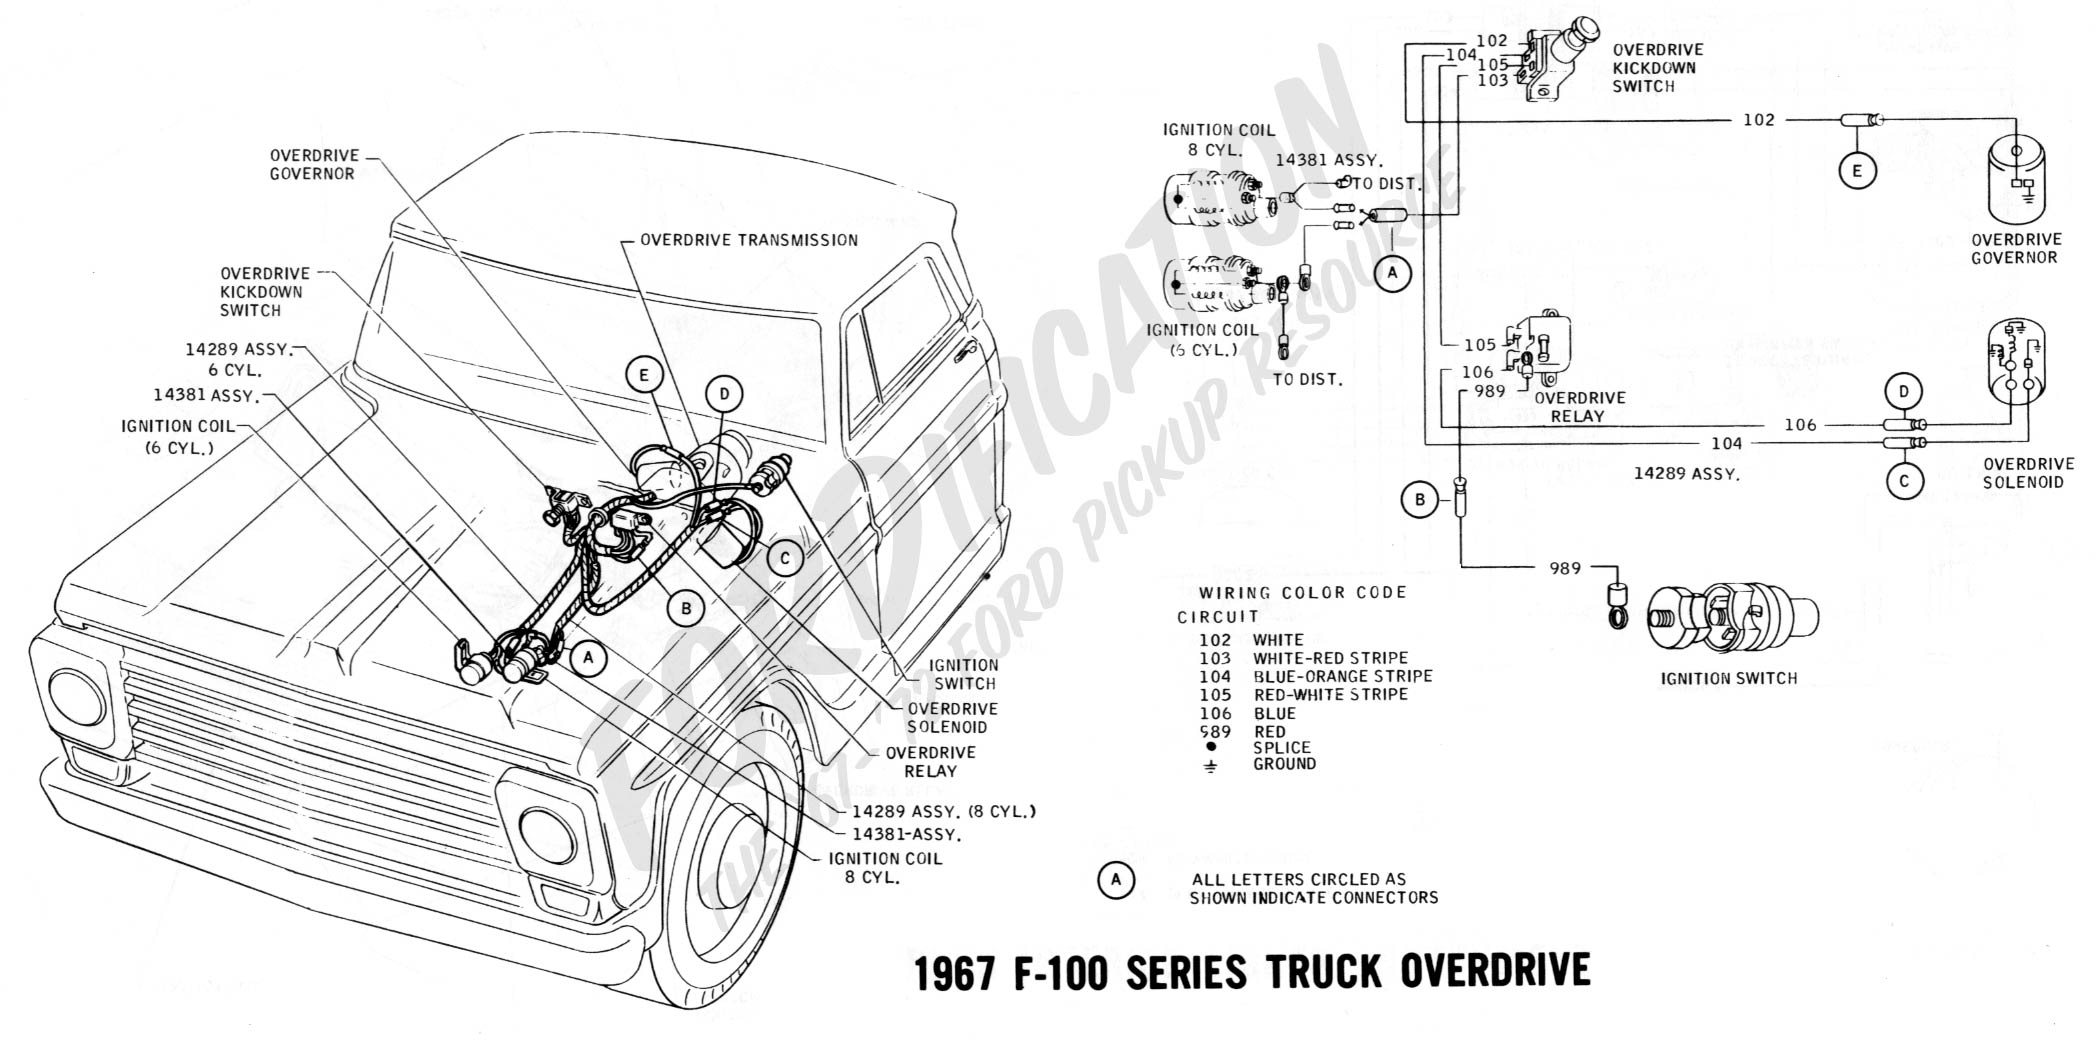 Wiring Overdrive on Ford F Wiring Harness Block And Schematic Diagrams Fuse